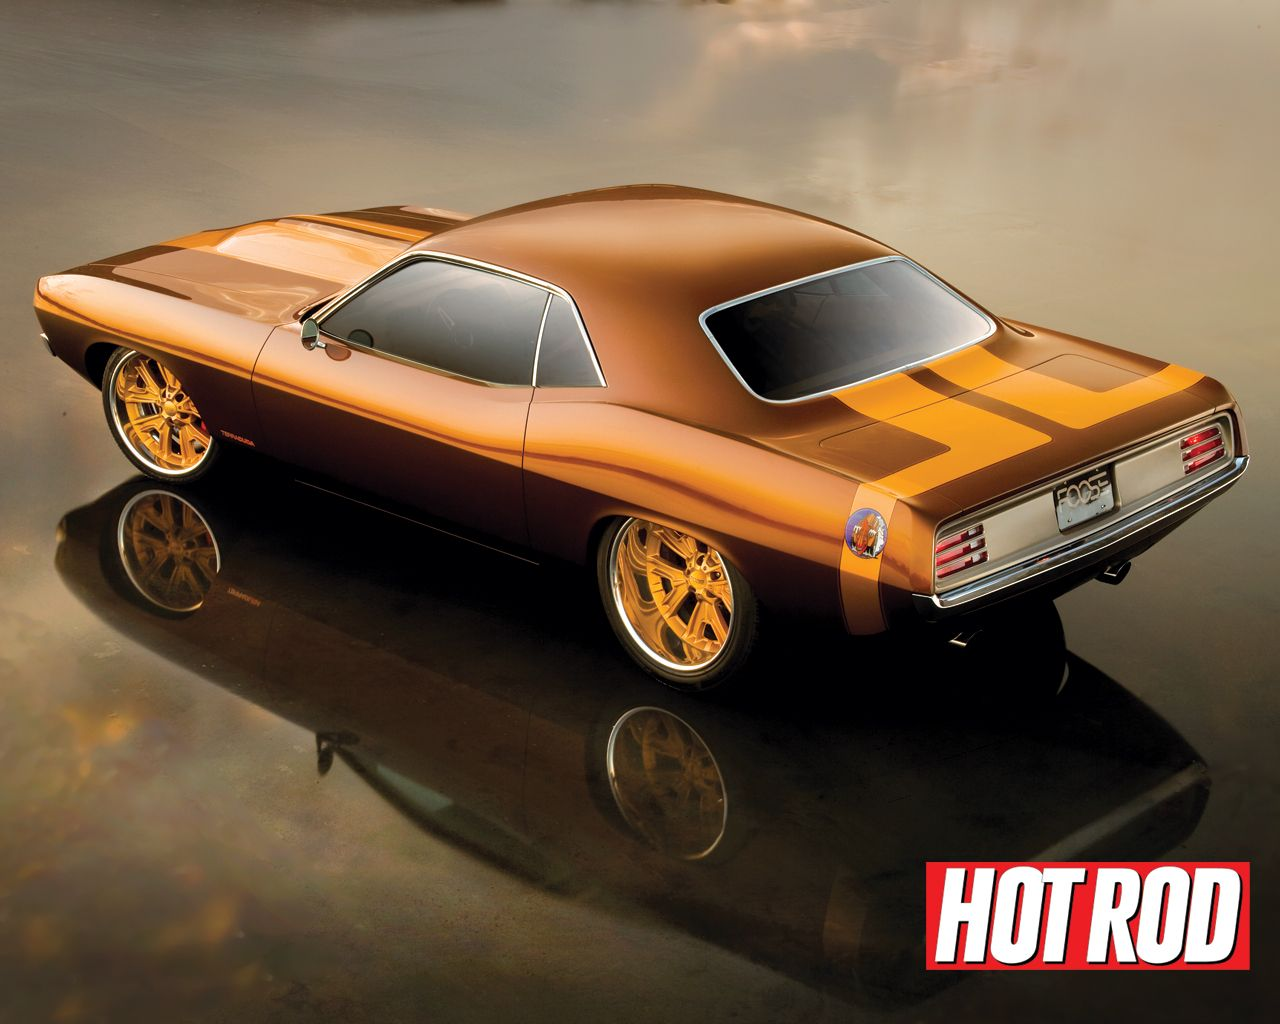 car hot rod desktops 21 hot rod wallpapers   hrdp muscle car hot rod 1280x1024